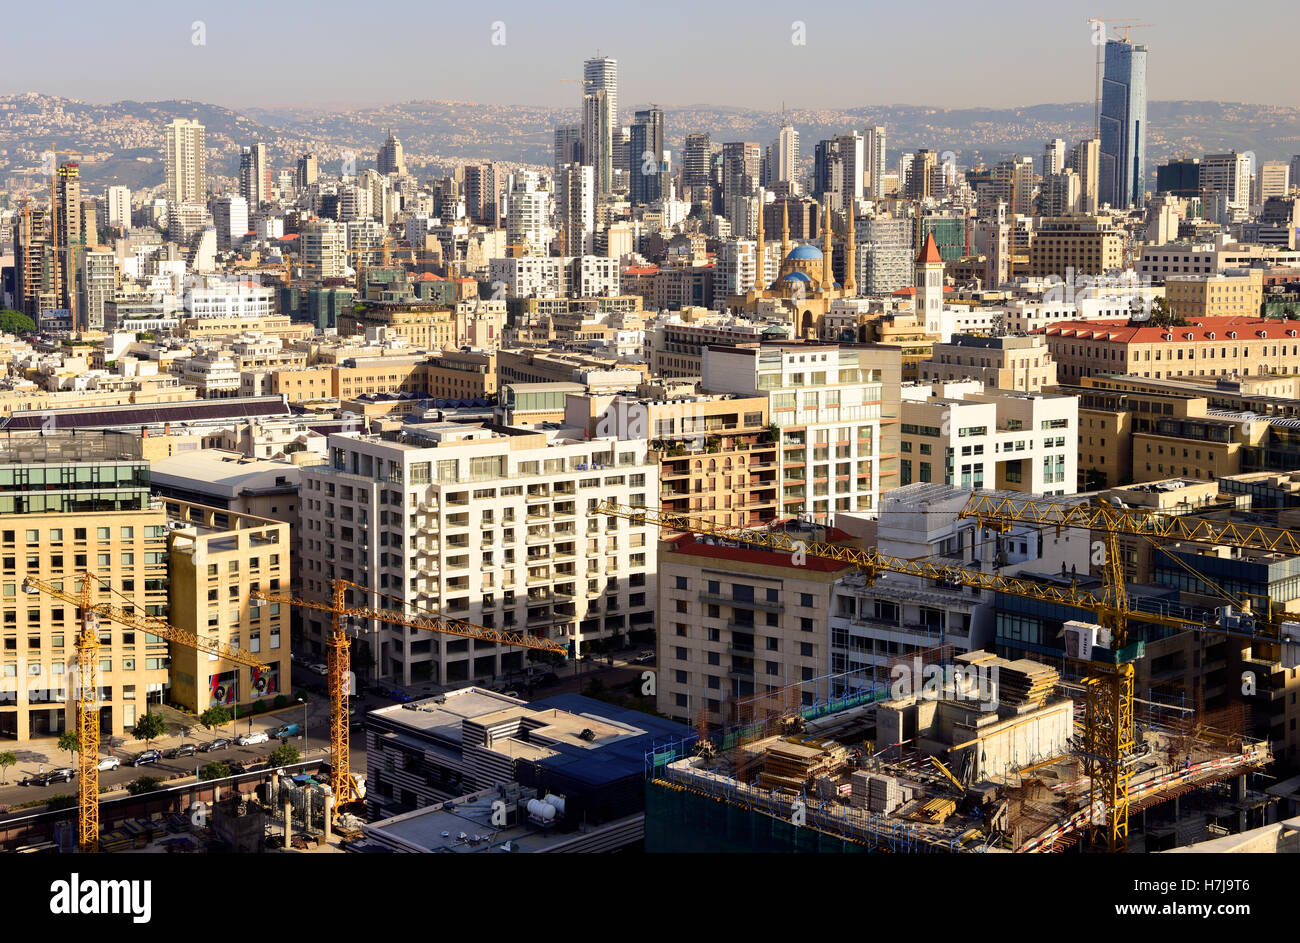 General view over Beirut, Beirut, Lebanon. - Stock Image